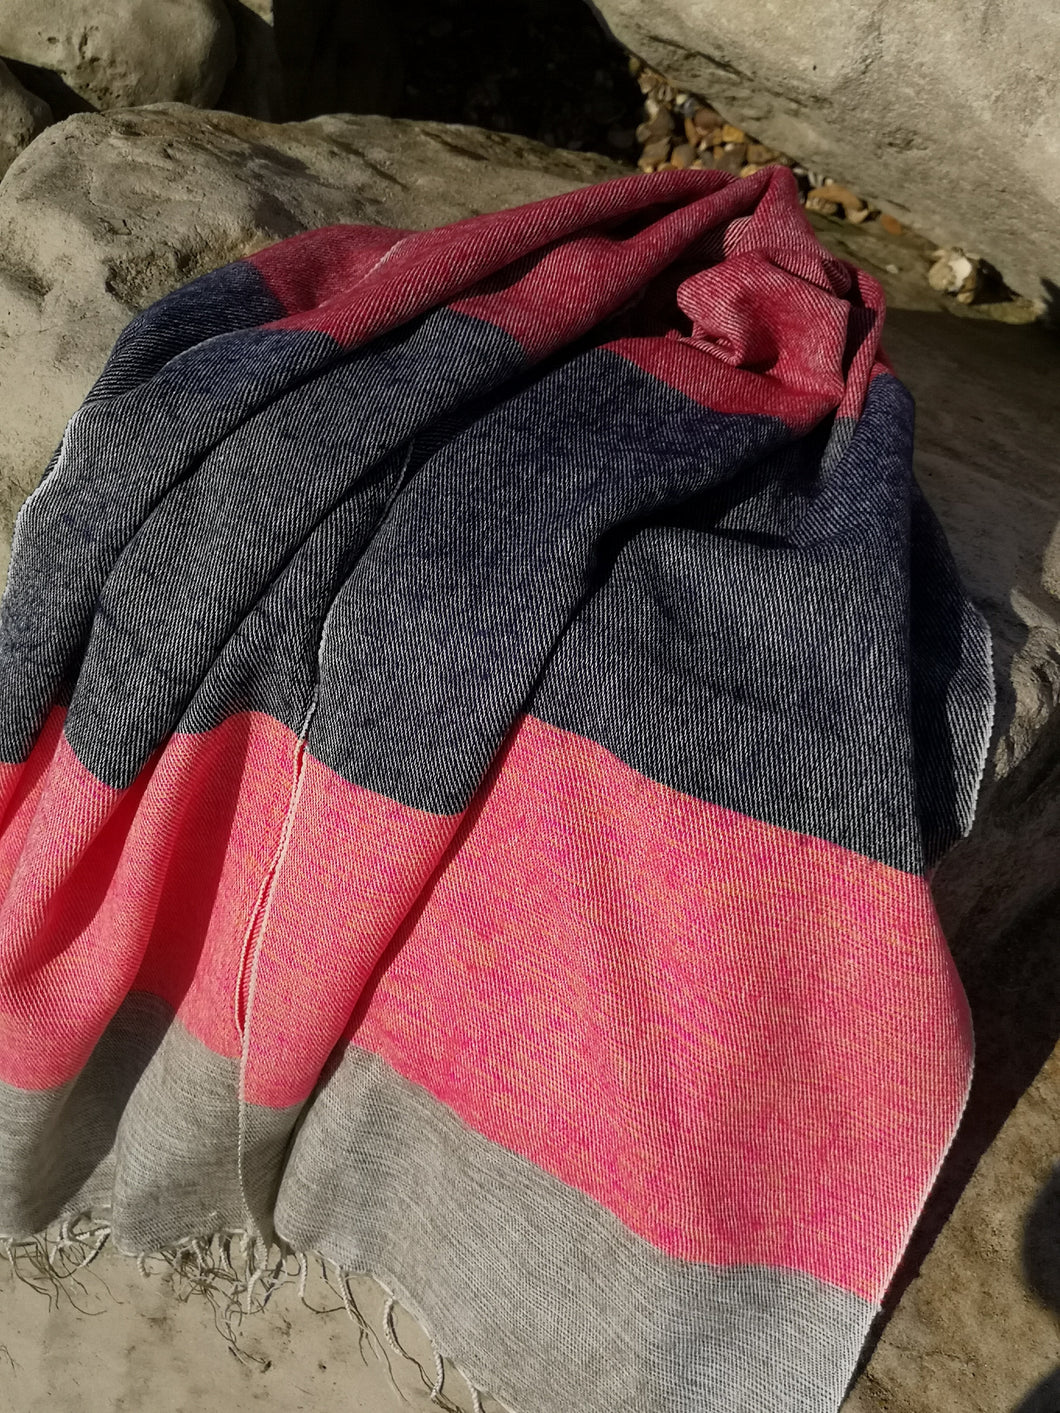 Californian inspired oversized stripe scarf, tones of Oatmeal, pink, orange, red and navy.  Perfect for keeping you warm over winter.